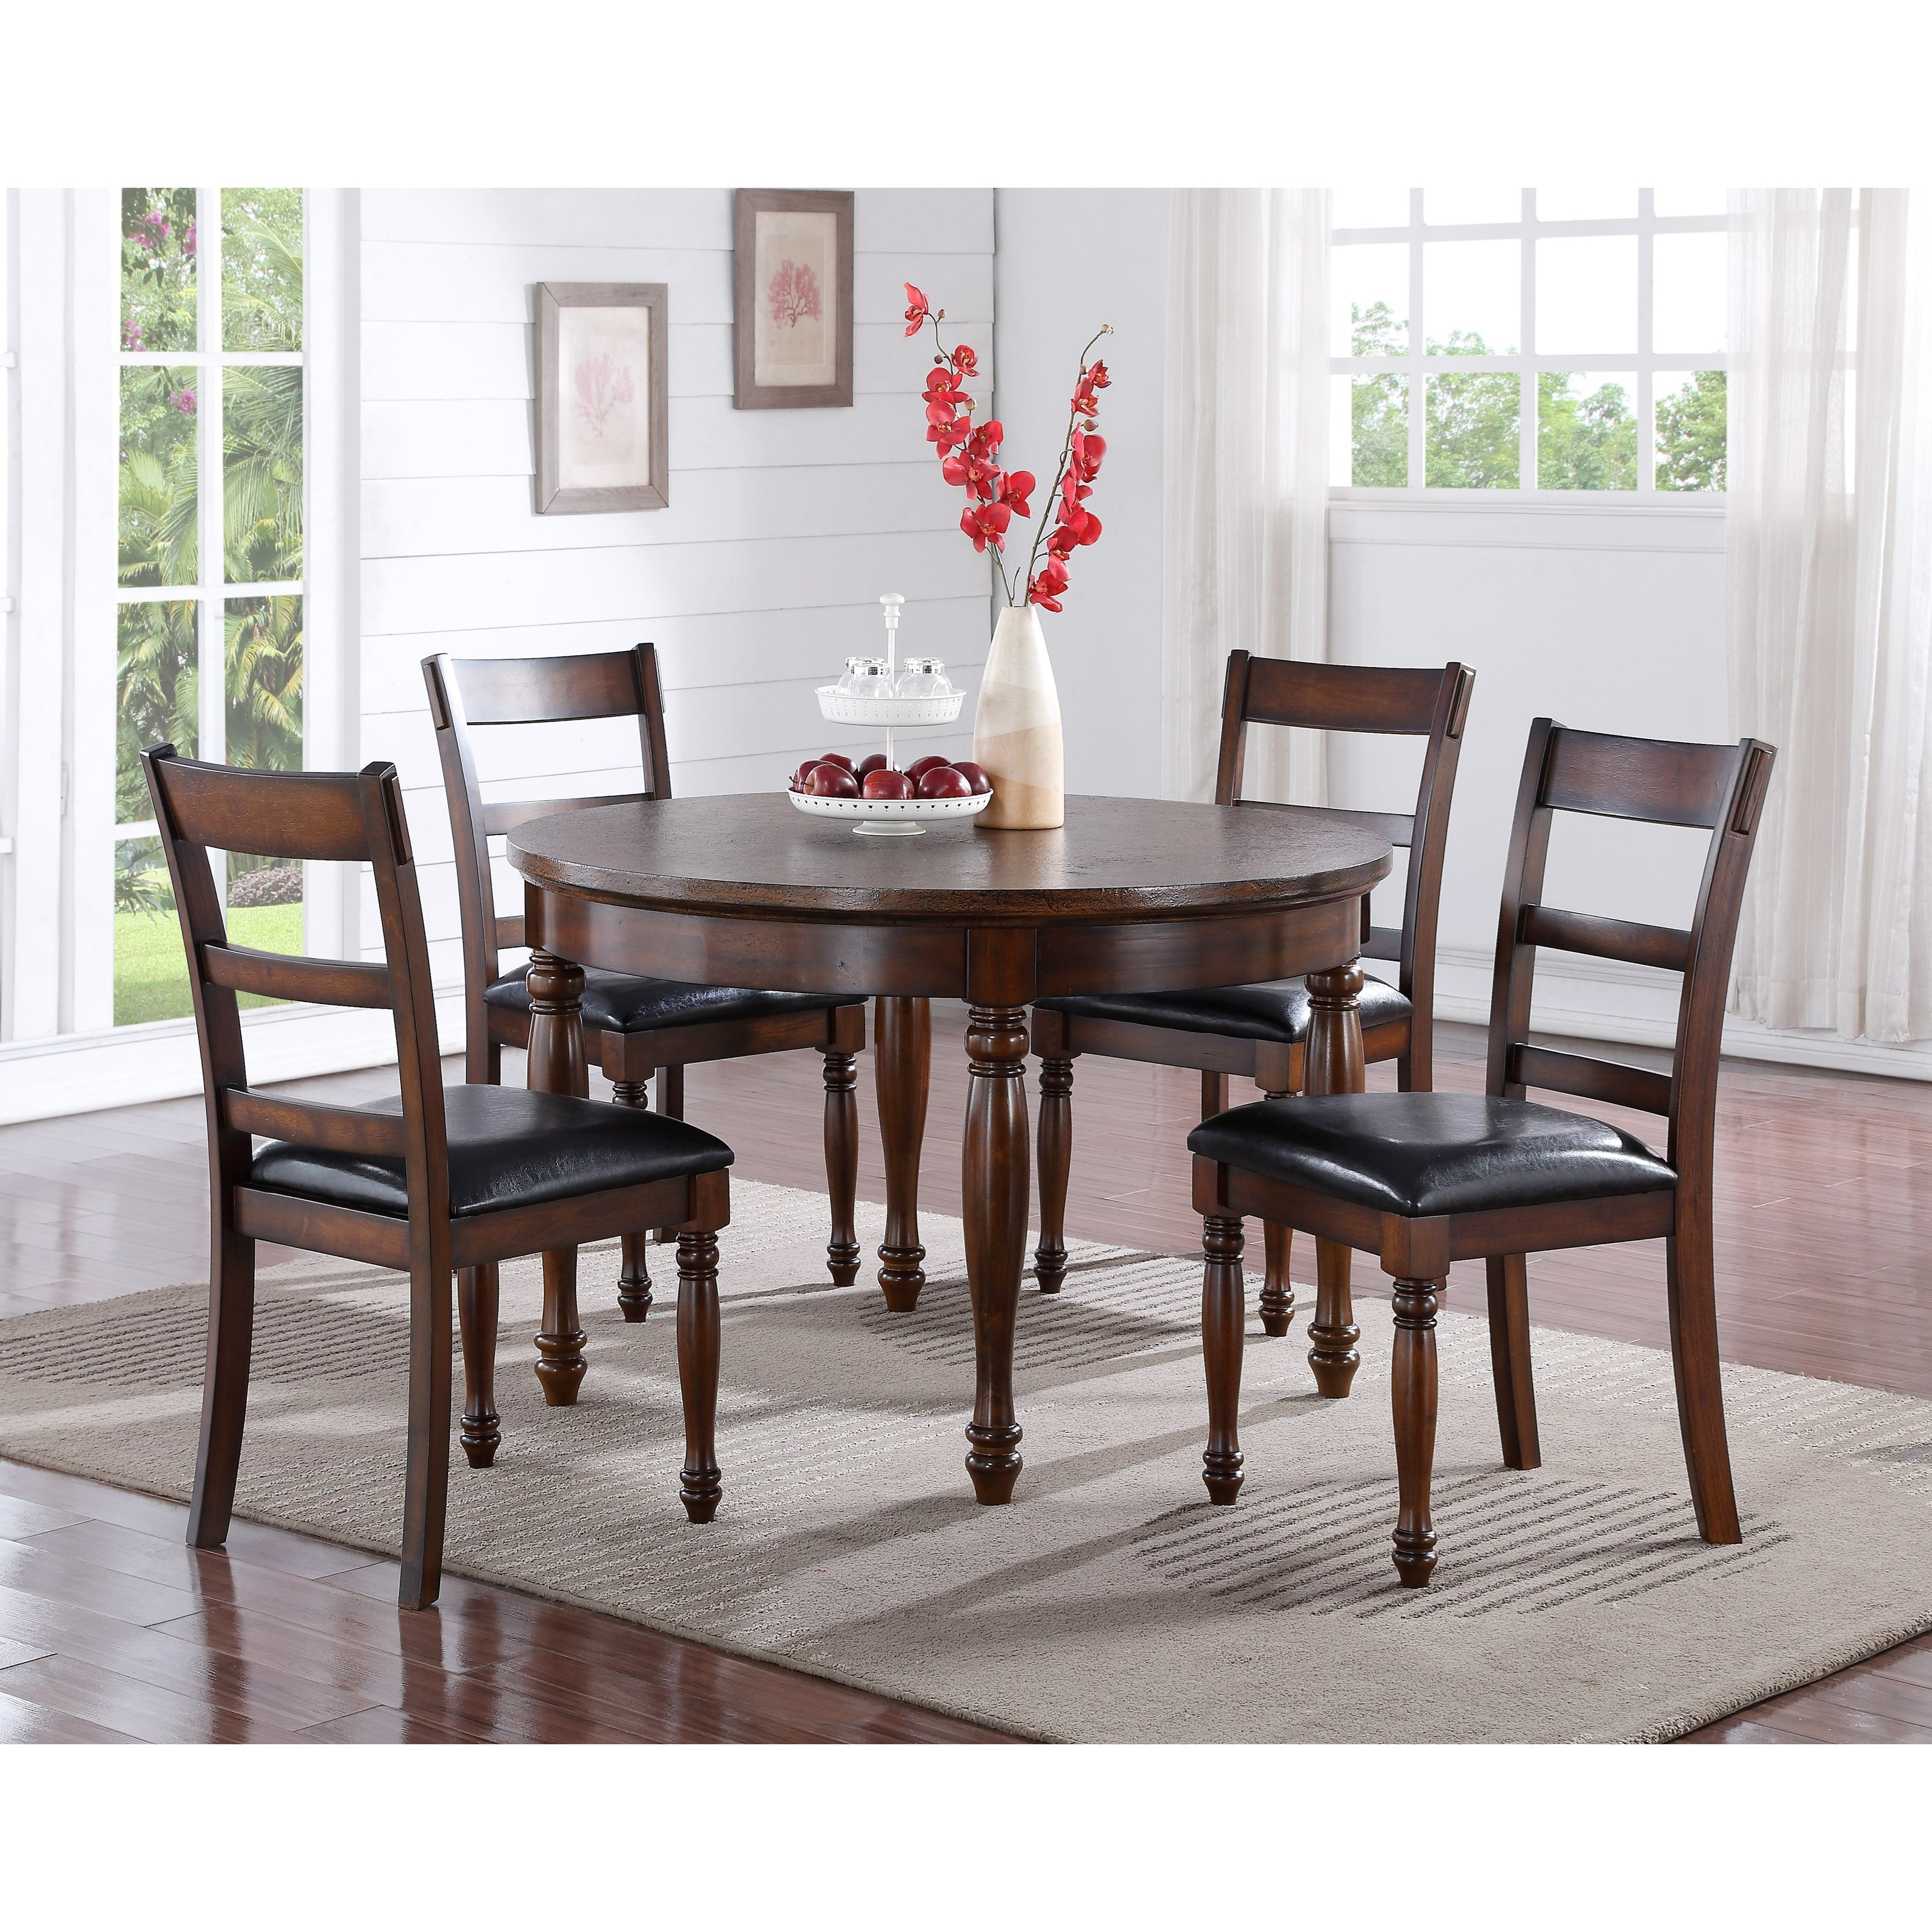 Legends Furniture Breckenridge 5 Piece Round Table & Chair Set - Item Number: ZBRG-8080D